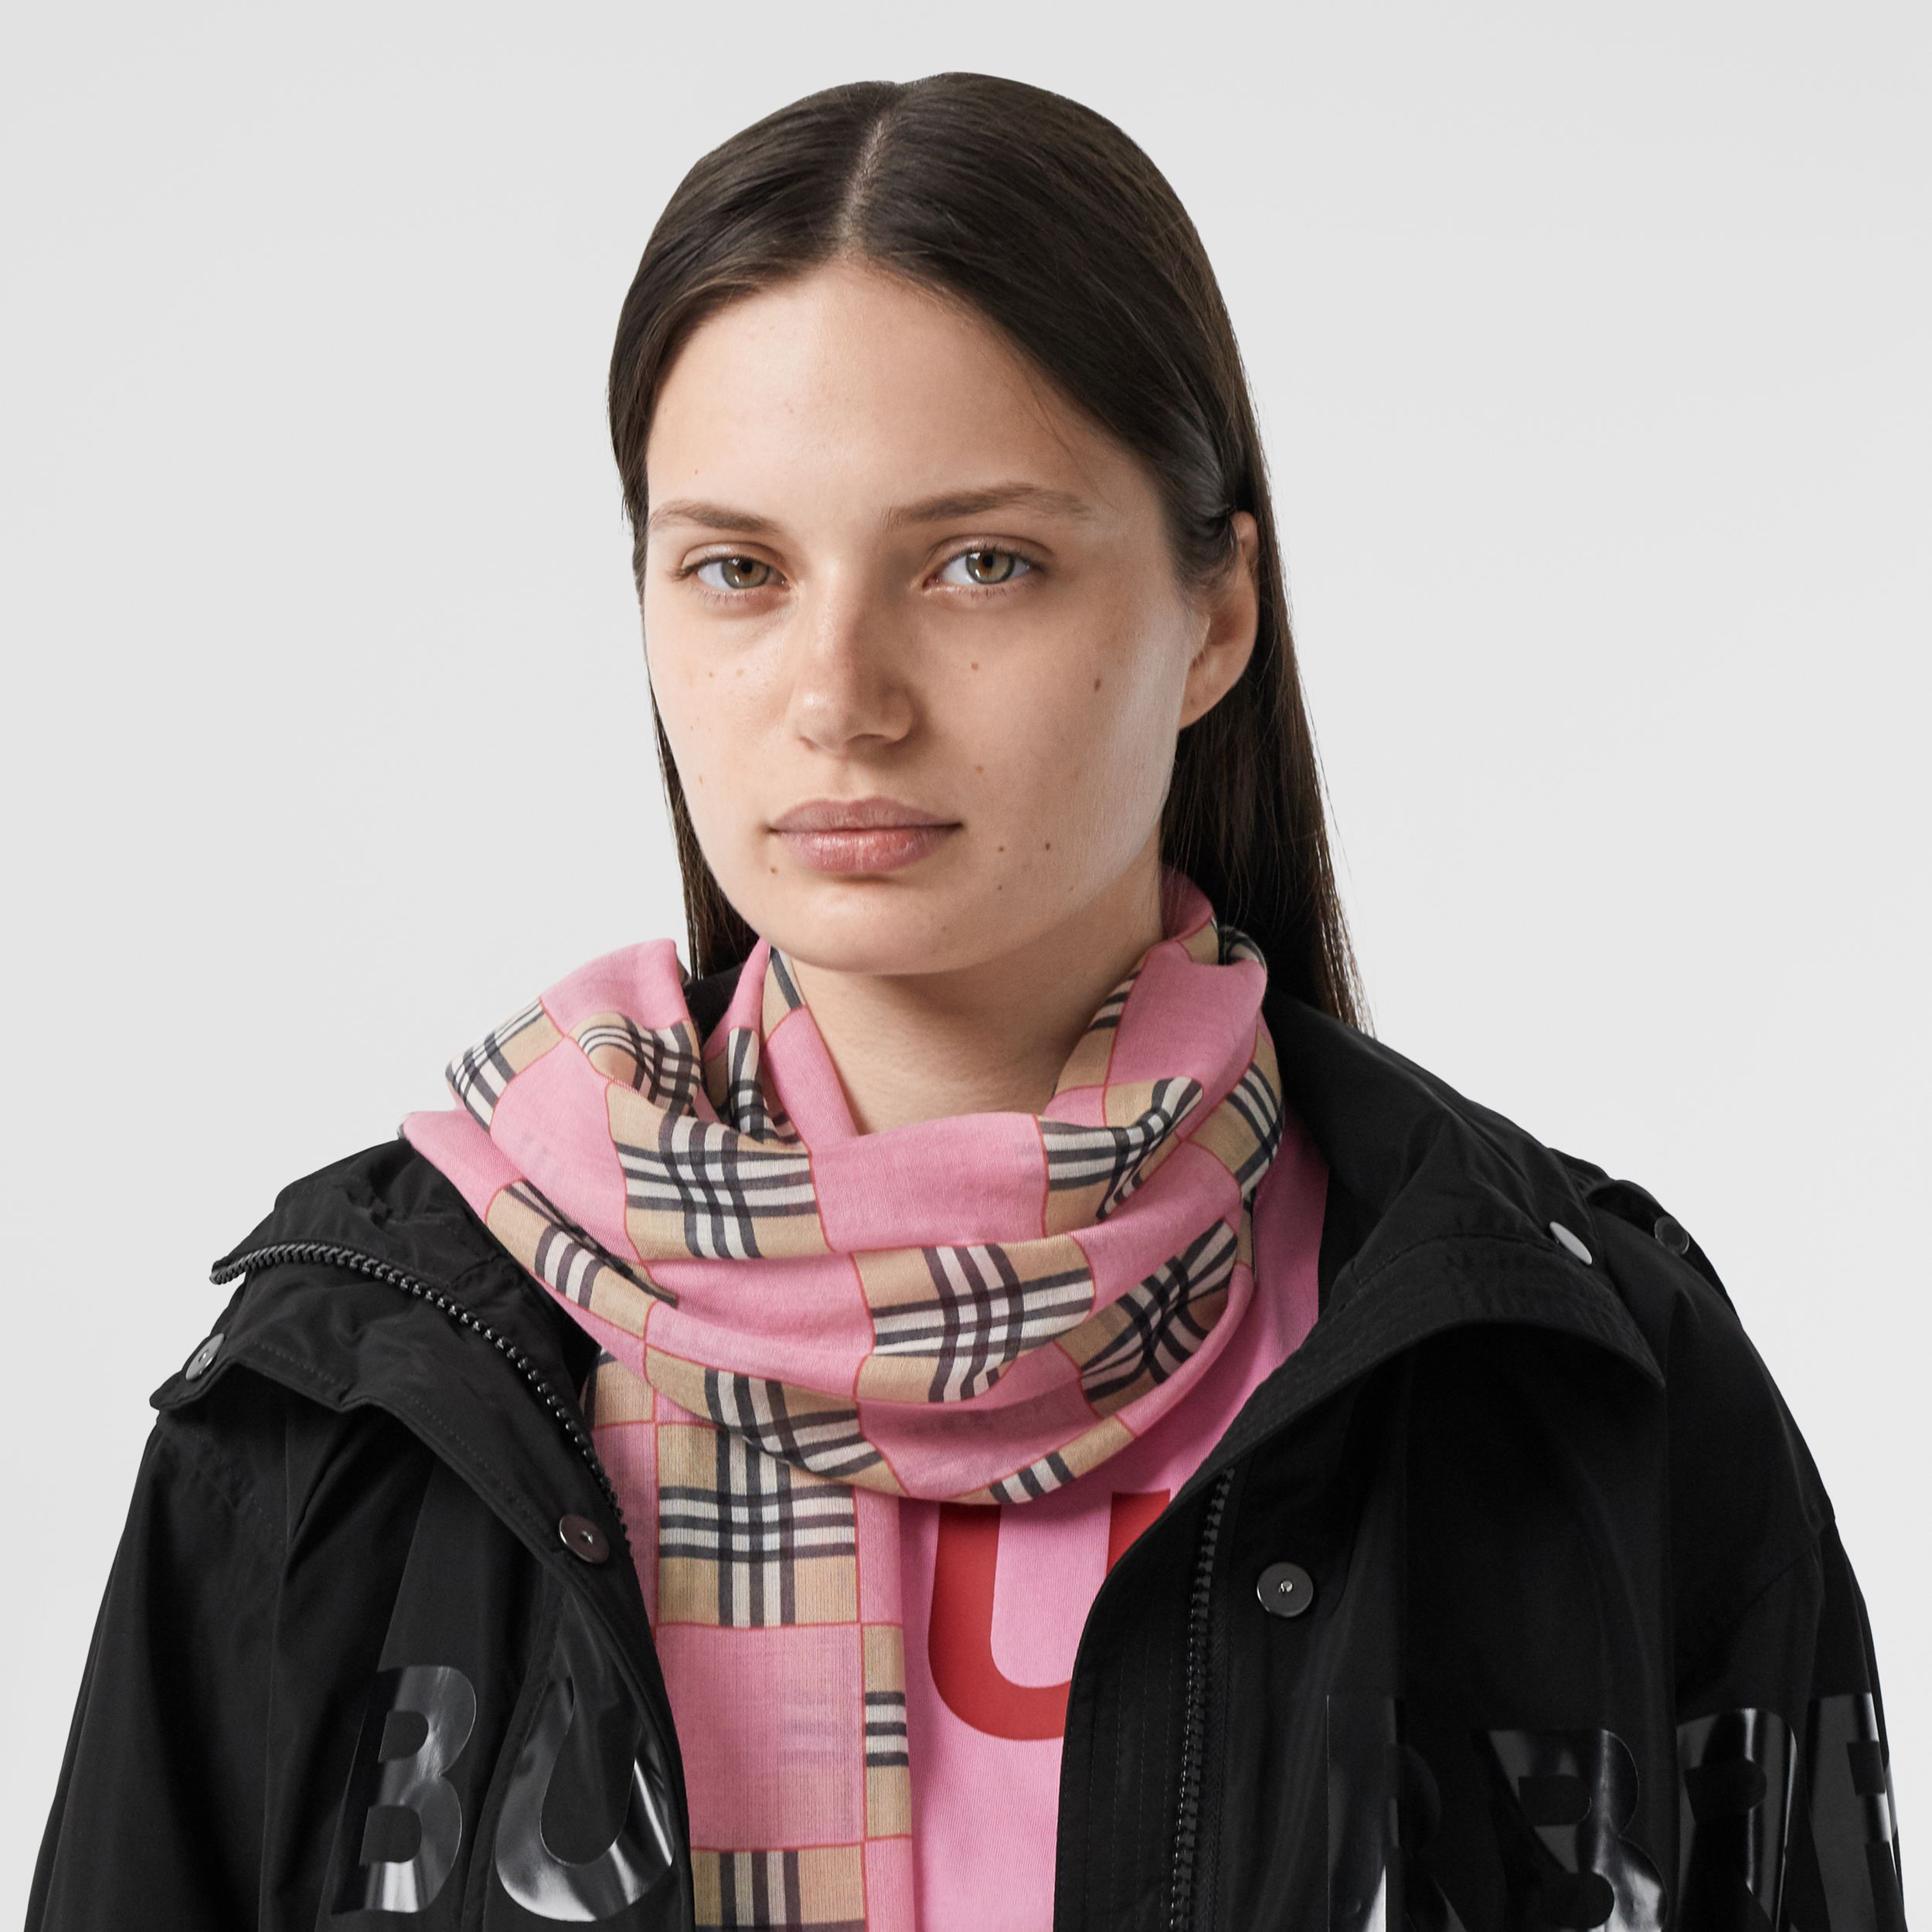 Chequer Print Wool Silk Scarf in Pink | Burberry - 3